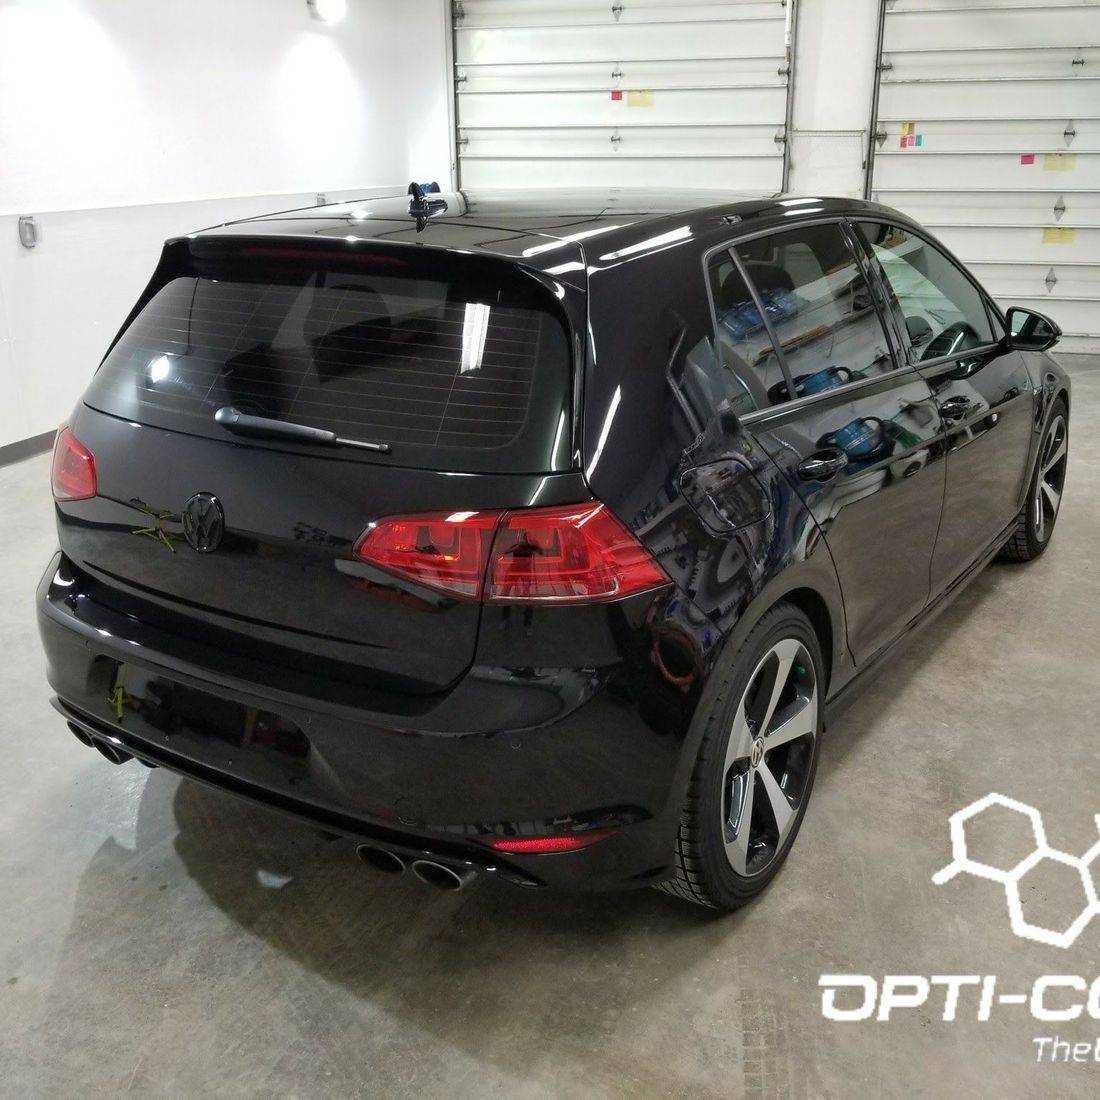 Kelowna VW Golf R Ceramic Coating